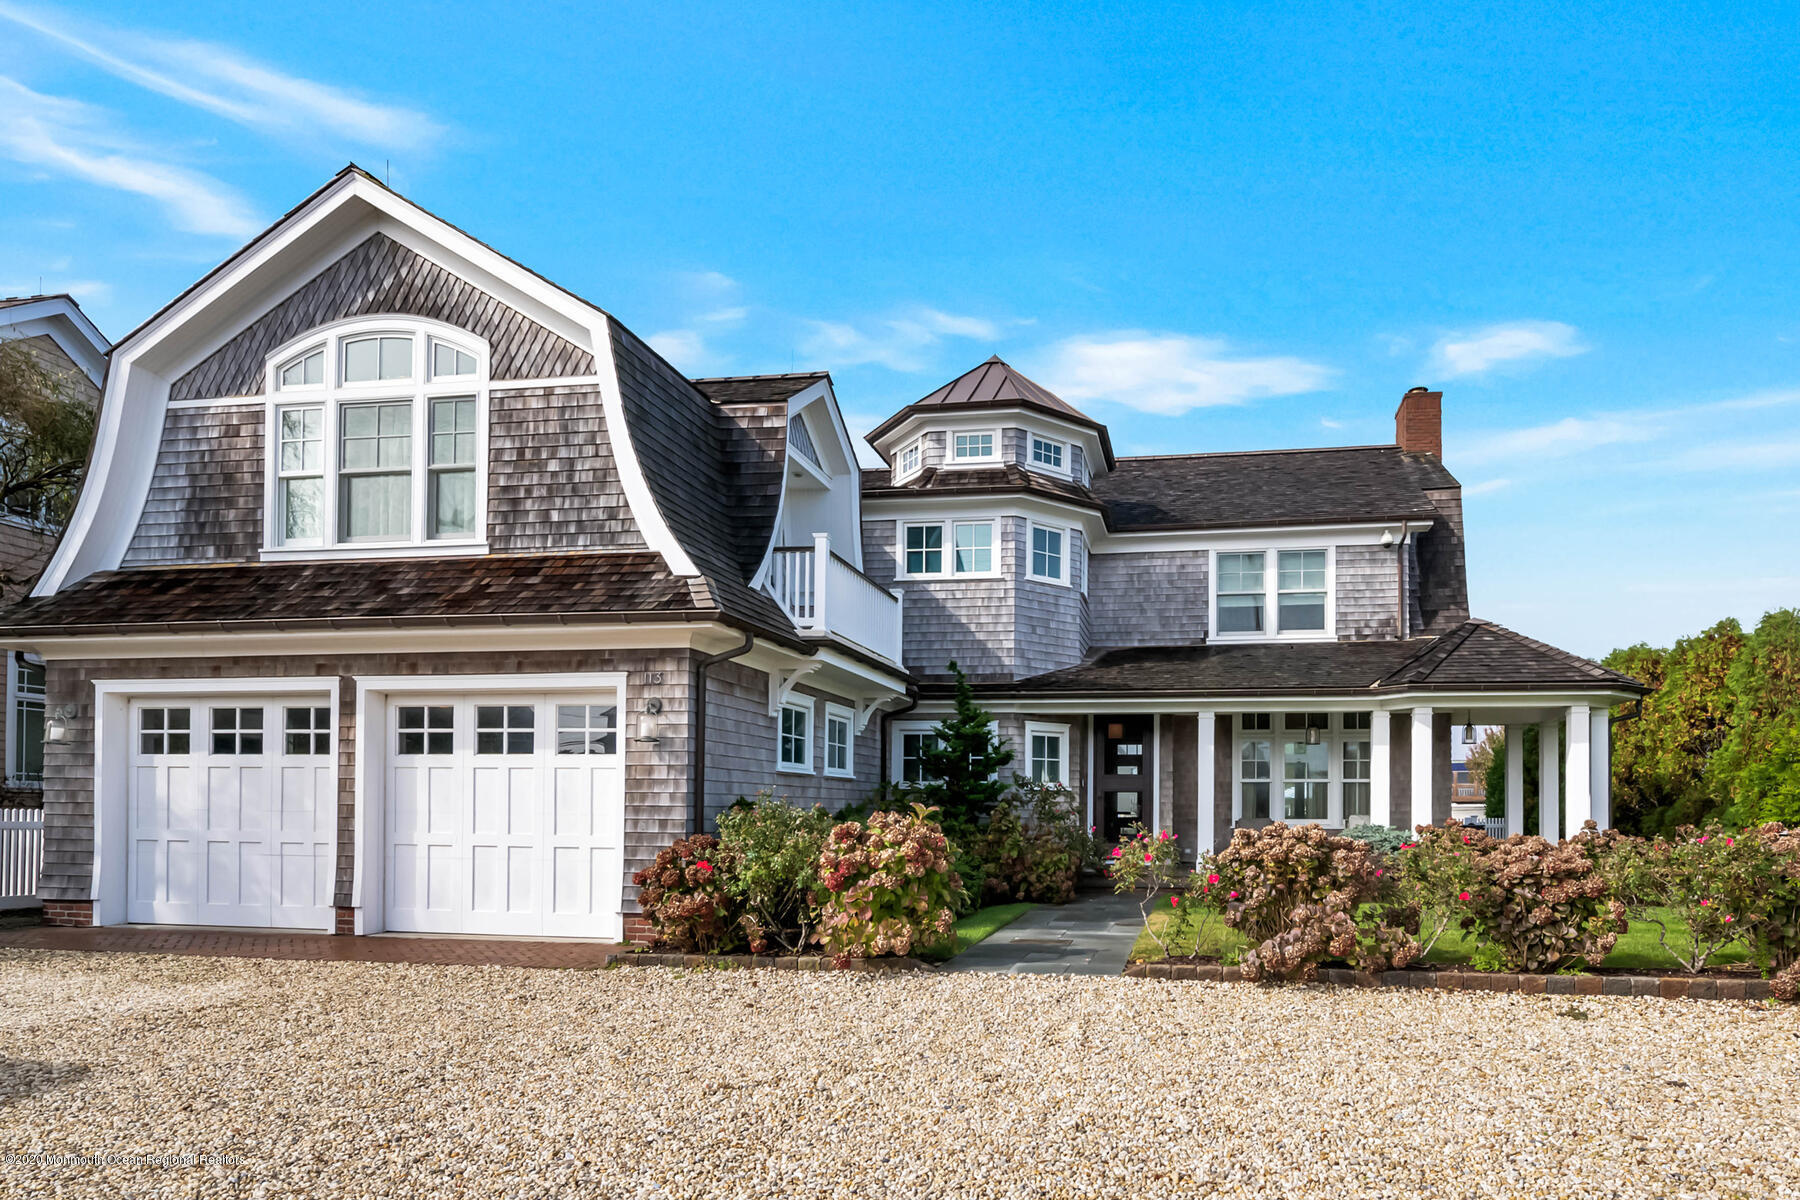 Photo of 113 Curtis Point Drive, Mantoloking, NJ 08738